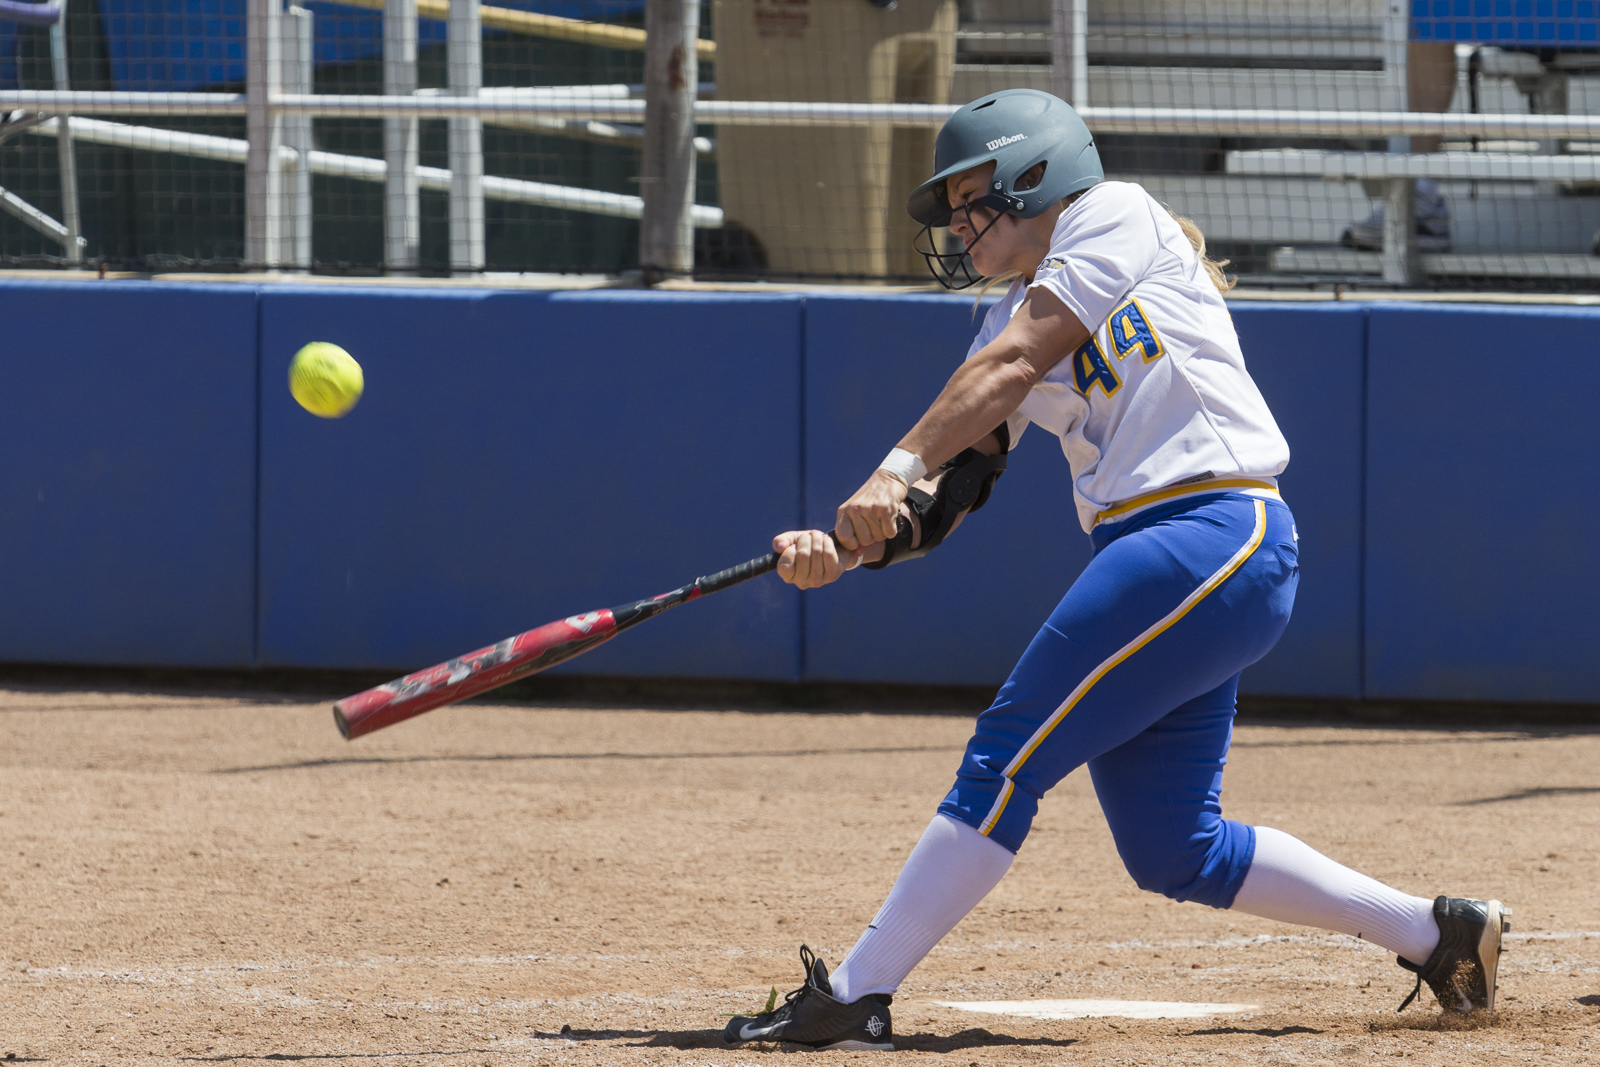 Senior Shelby Wisdom connects with a pitch, sending it flying. Dustin Harris/Daily Nexus